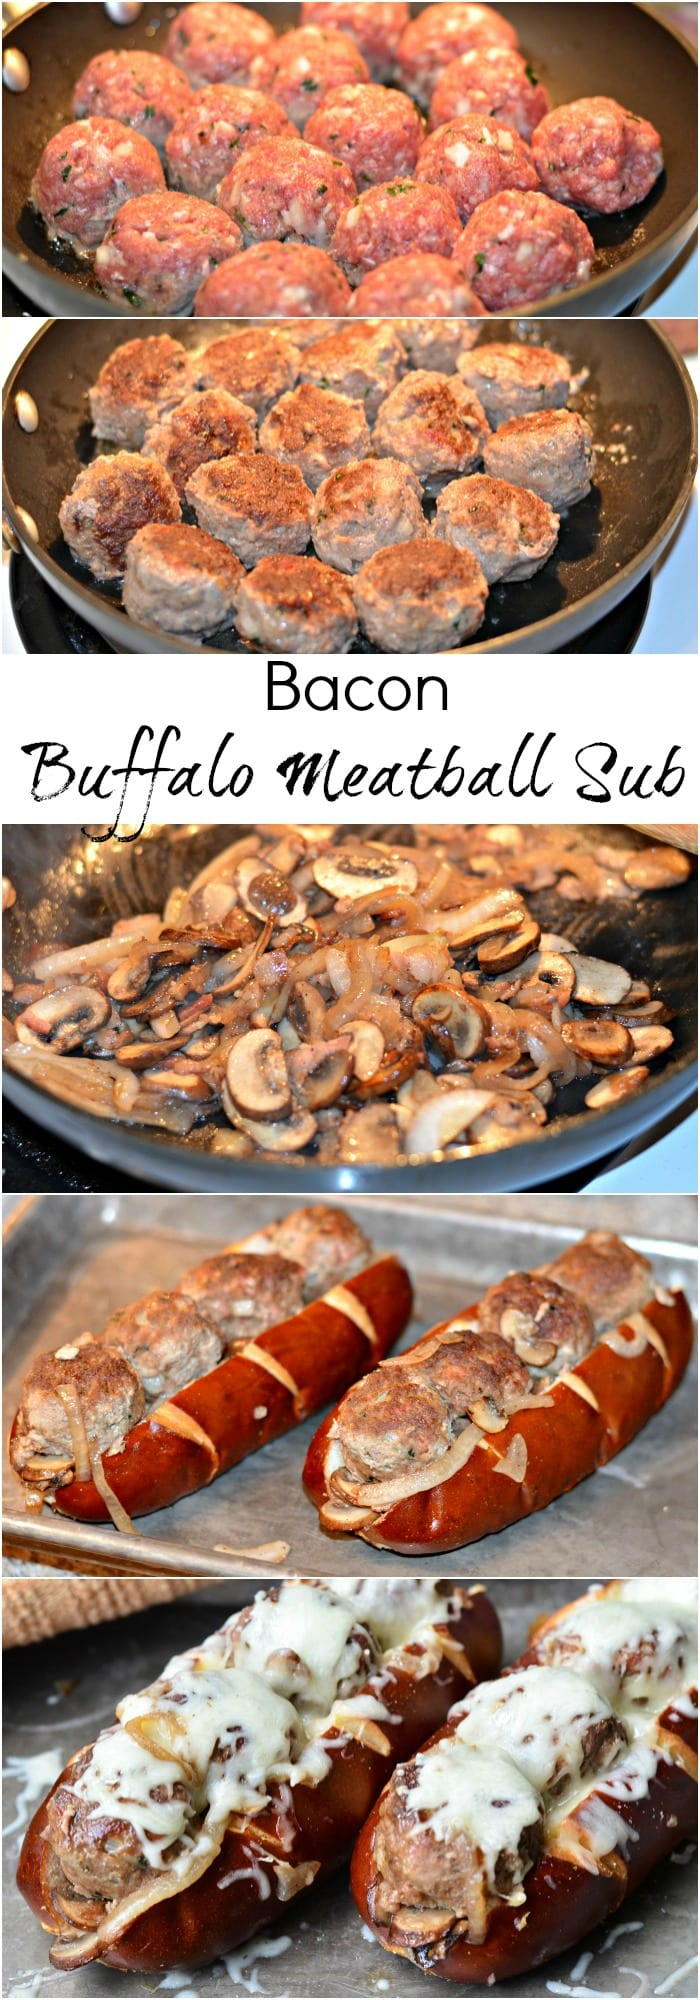 Bacon Buffalo Meatball Sub. Juicy meatballs made with buffalo meat and bacon stacked in a soft pretzel sub roll, baked with sauteed onions, mushrooms and bacon and topped with lots of mozzarella cheese. | from willcookforsmiles.com